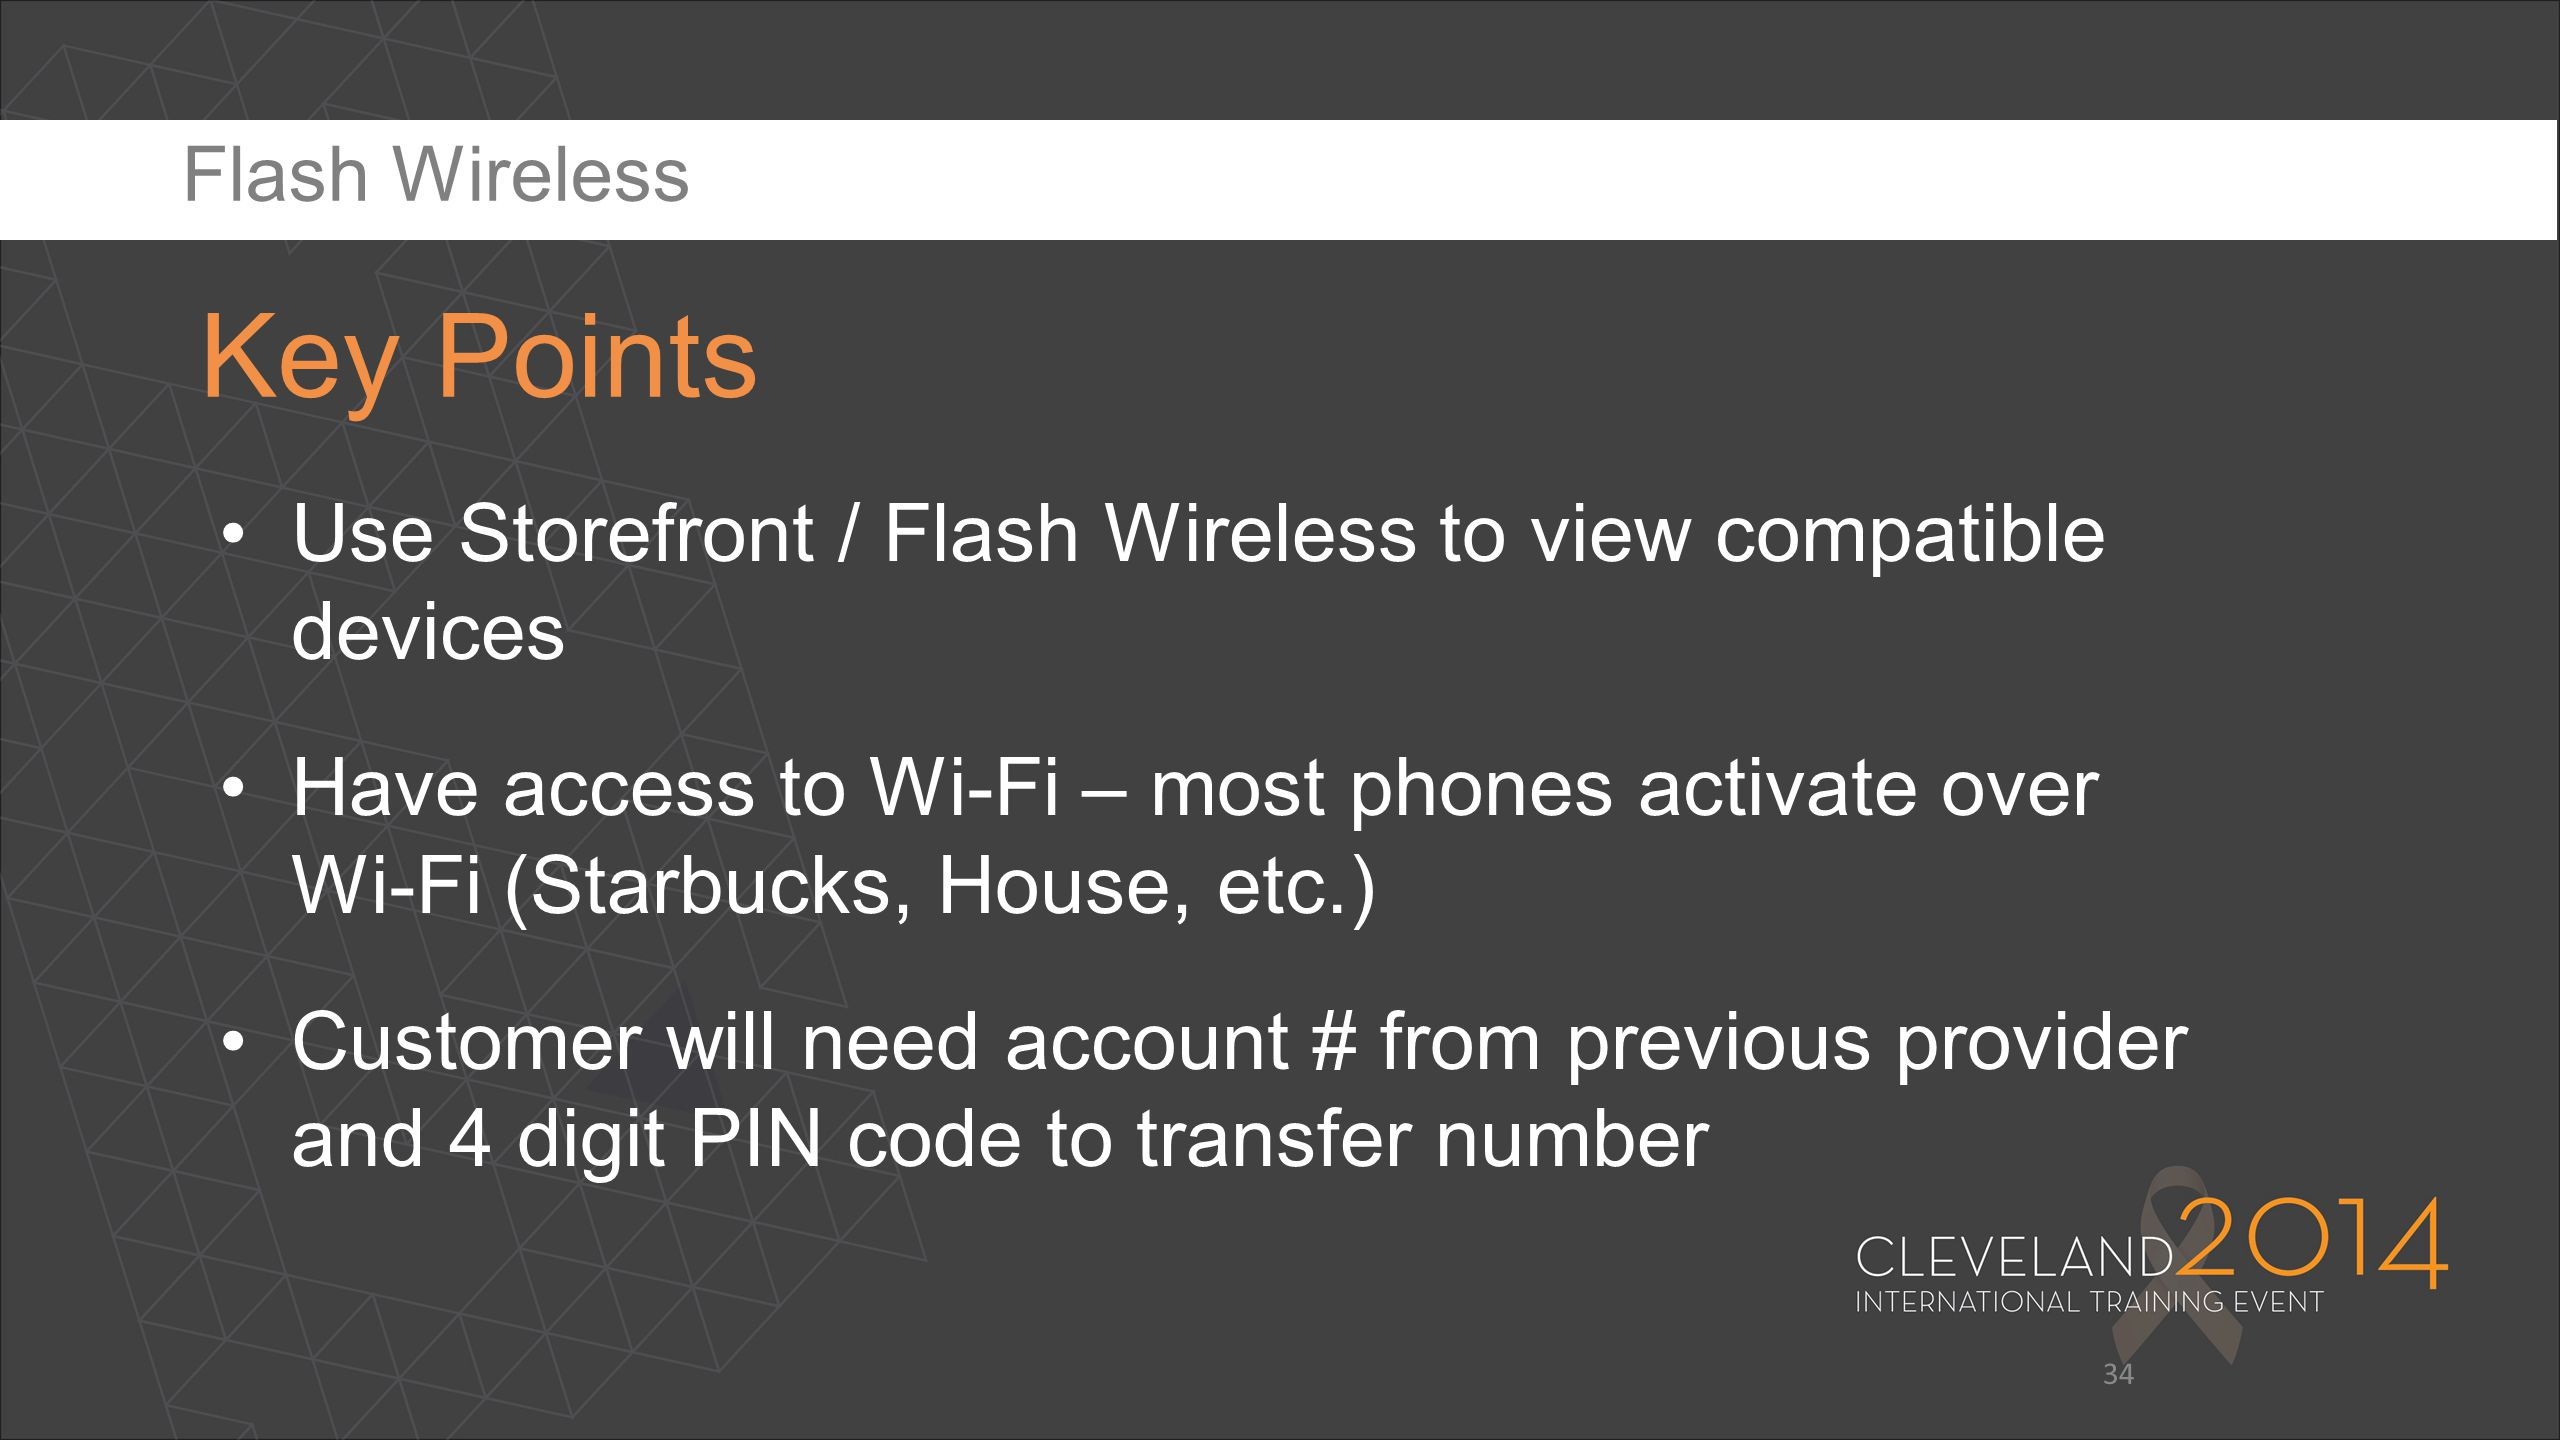 34 Use Storefront / Flash Wireless to view compatible devices Have access to Wi-Fi – most phones activate over Wi-Fi (Starbucks, House, etc.) Customer